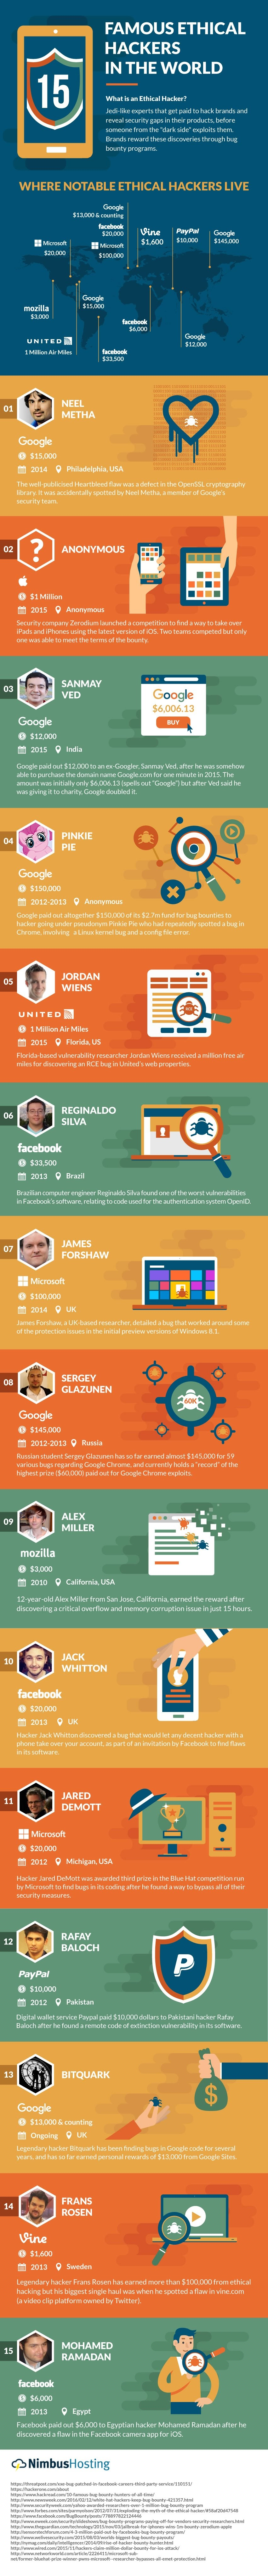 15 Famous Ethical Hackers In The World - #infographic